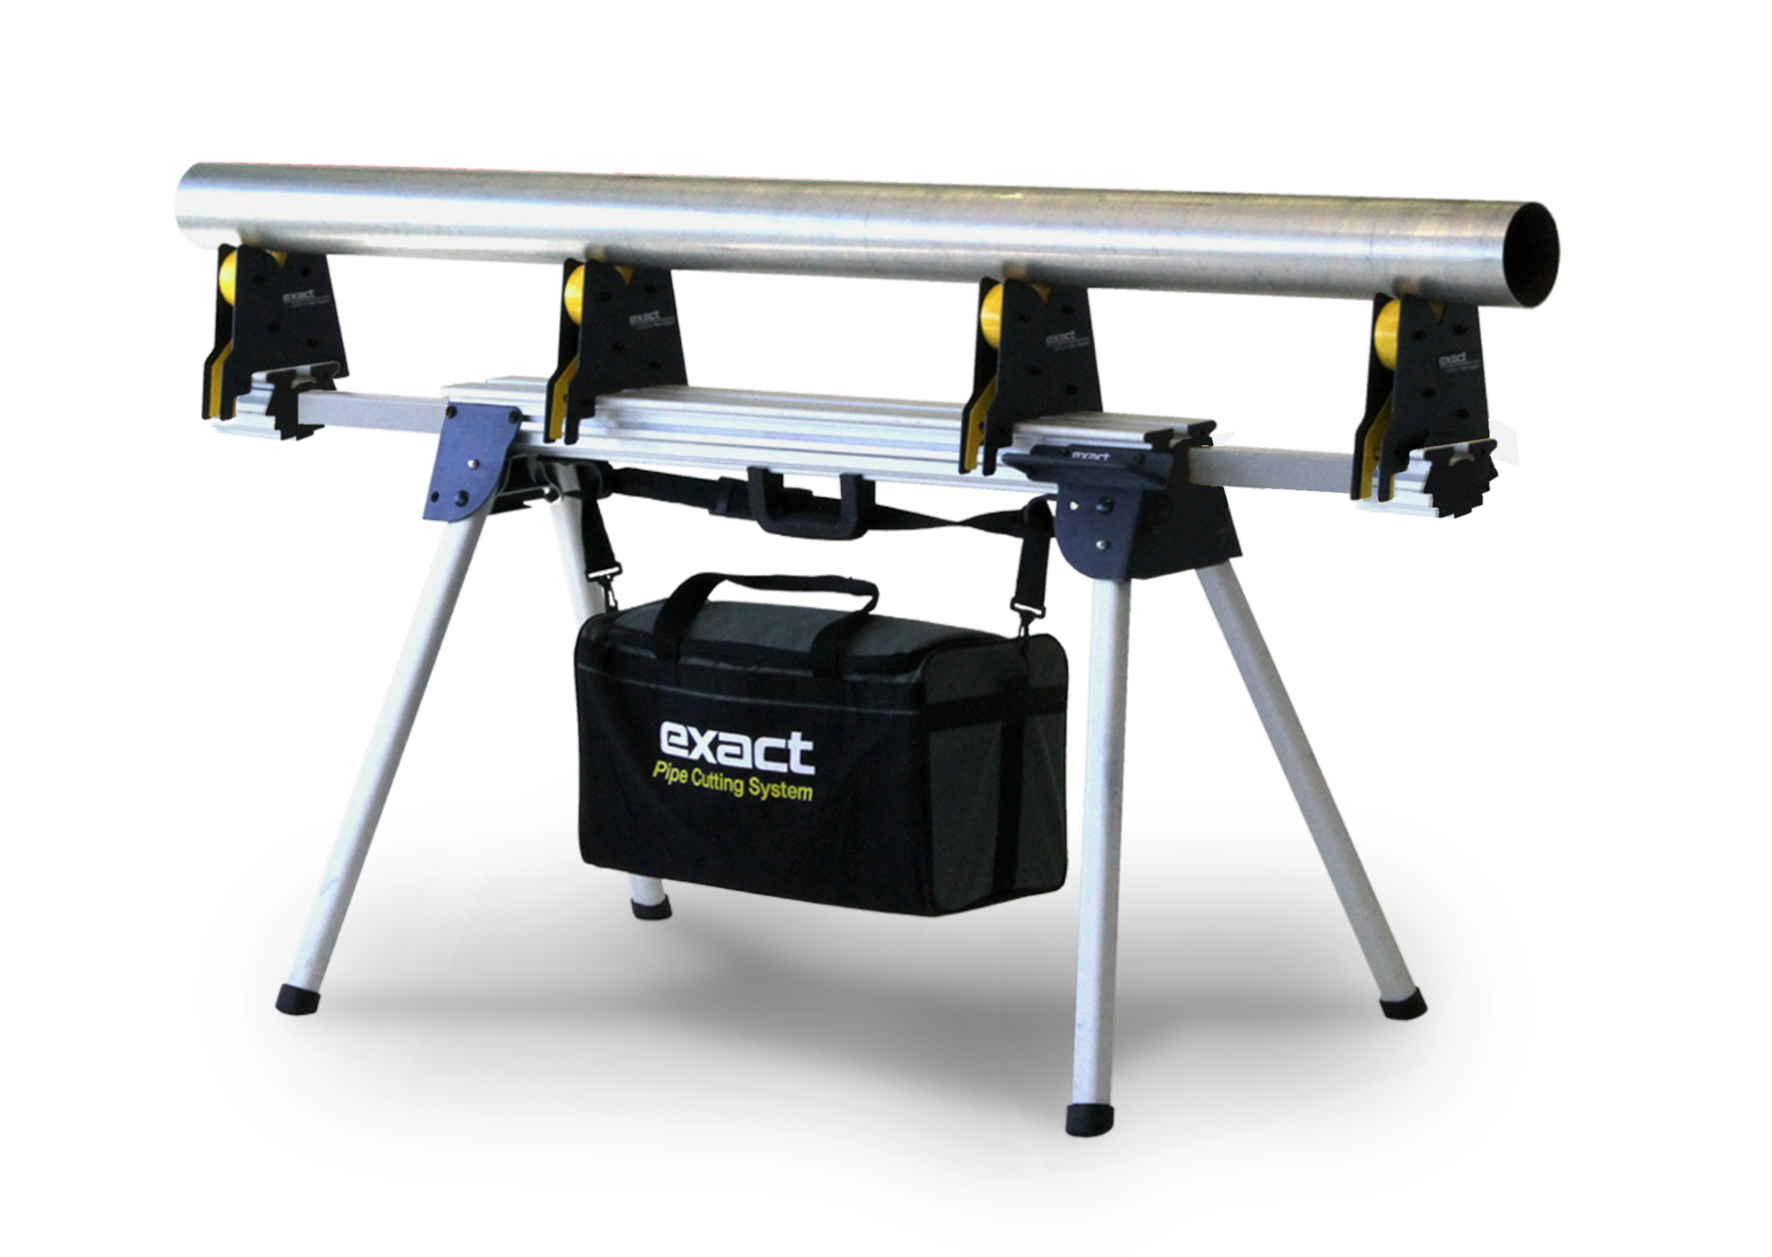 EXACT Pipe Cutting Bench